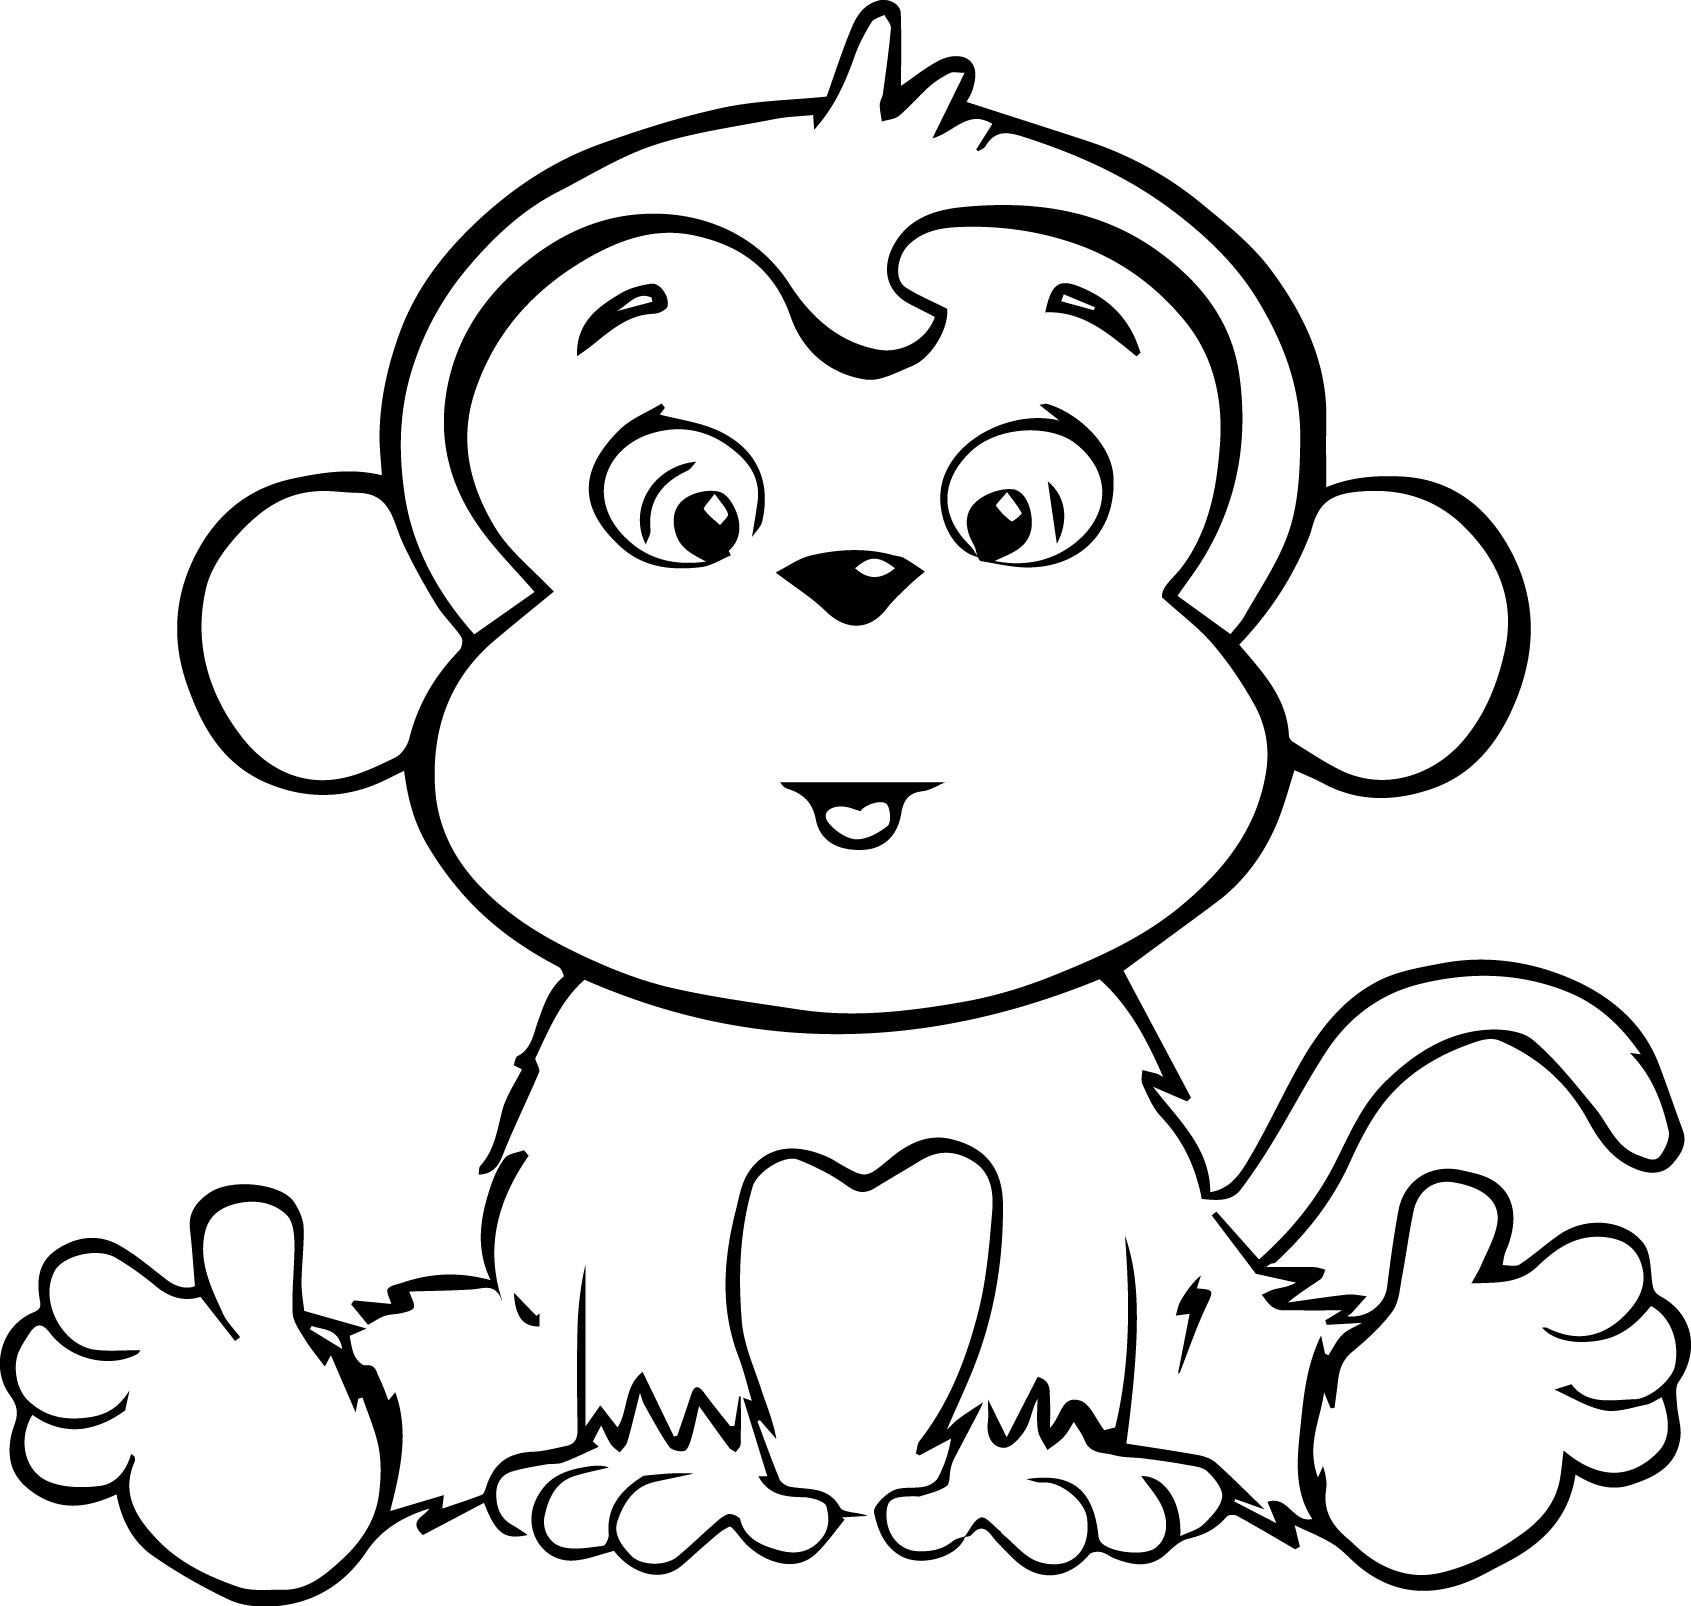 Opt For The Best Cartoon Coloring Pages For Your Kids Monkey Coloring Pages Cartoon Coloring Pages Cute Coloring Pages